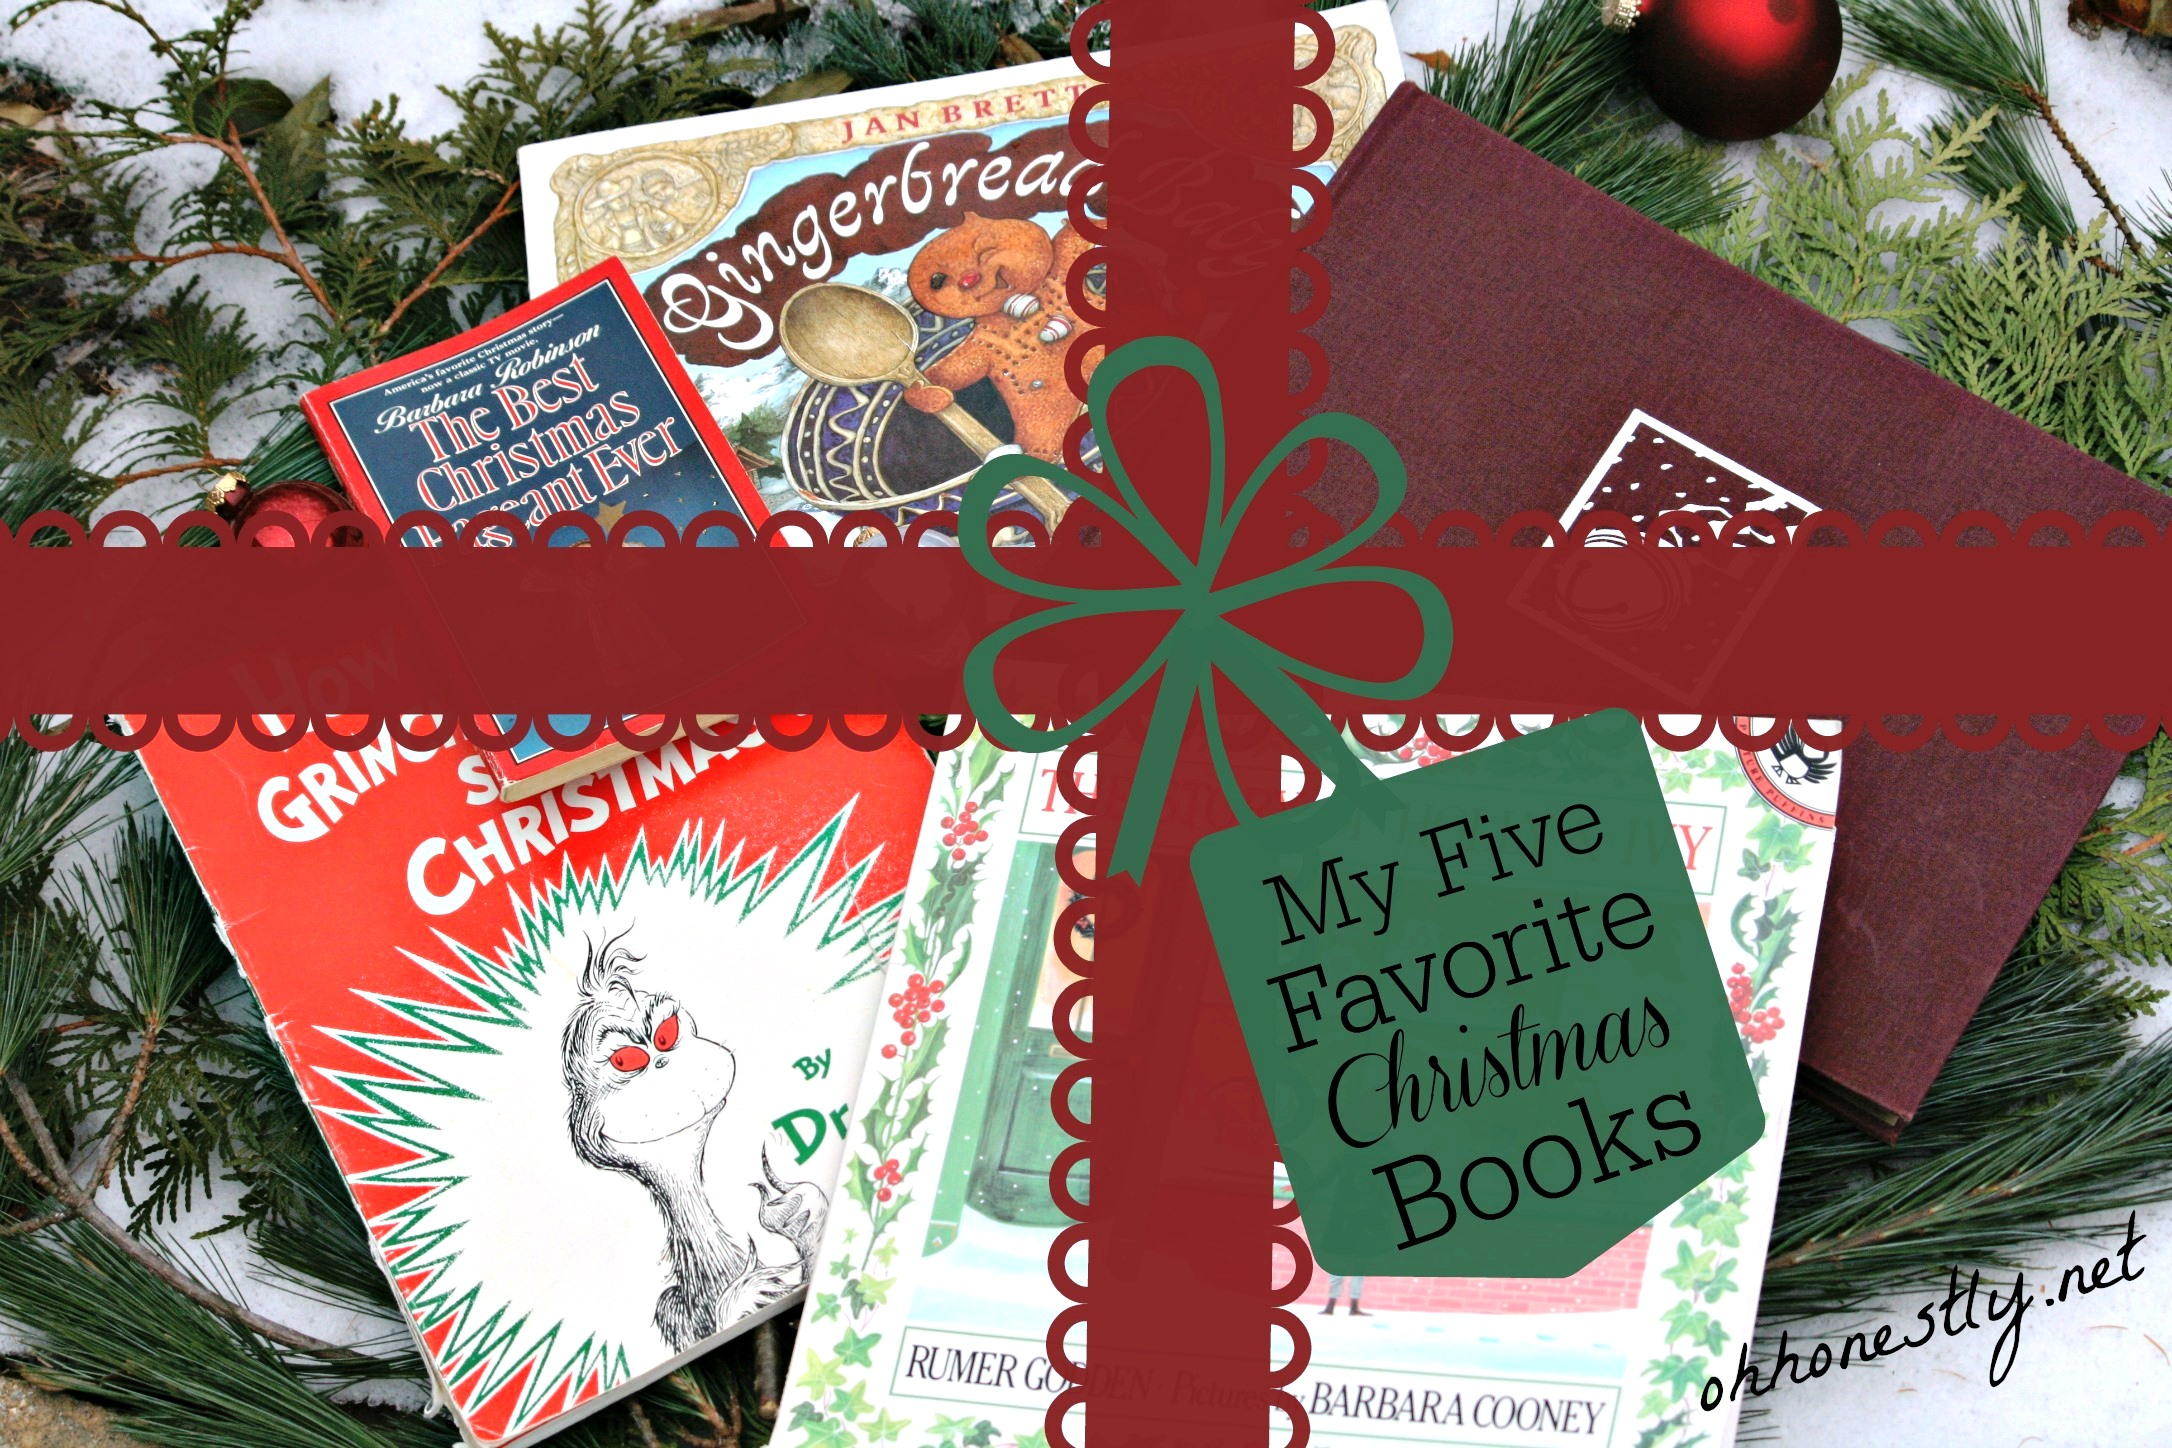 My-Five-Favorite-Christmas-Books